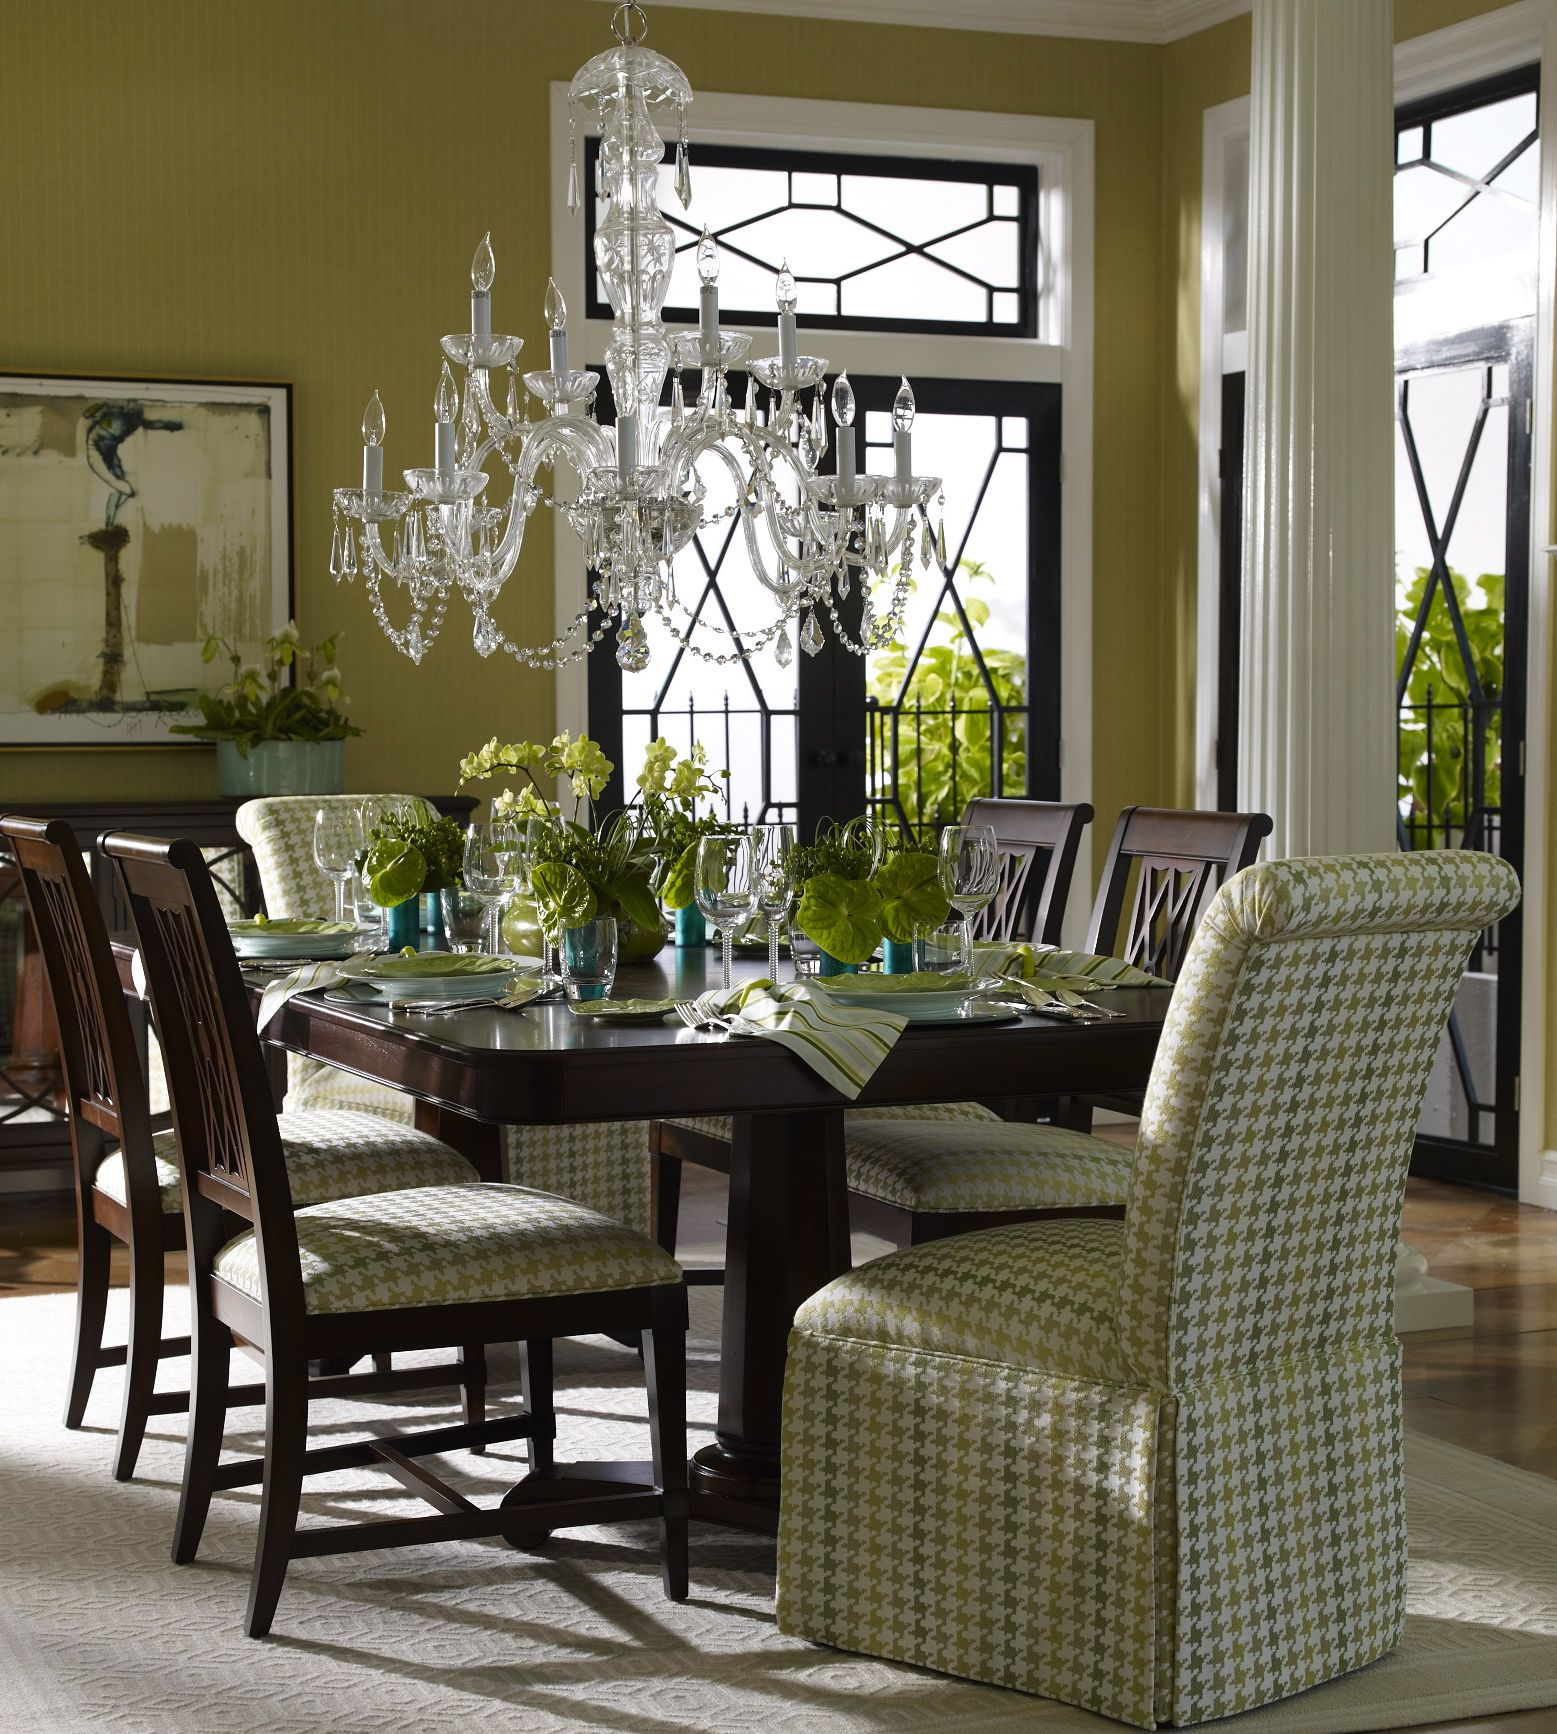 Awash In Springy, Celery Green, This Dining Room Shows